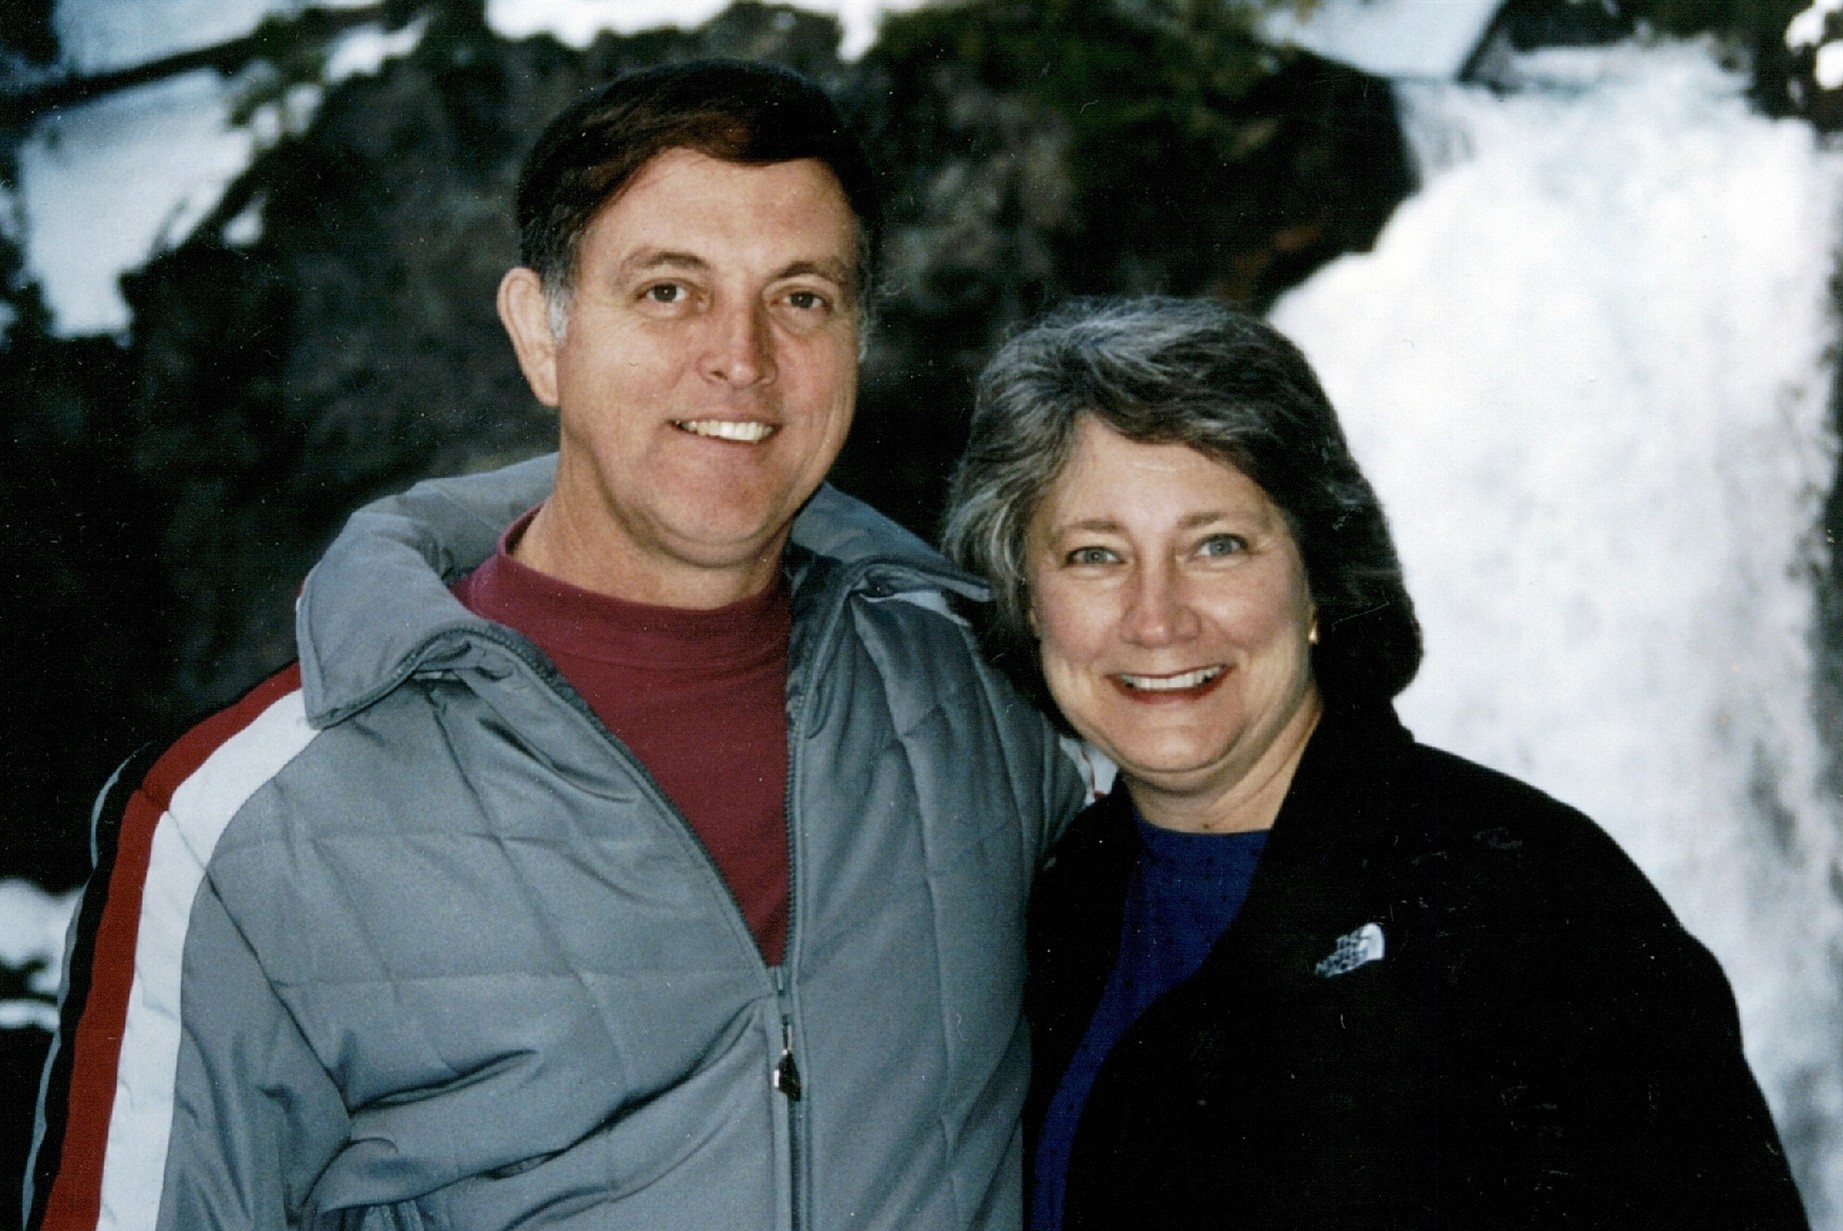 Mary and Frank Nulty - 1994